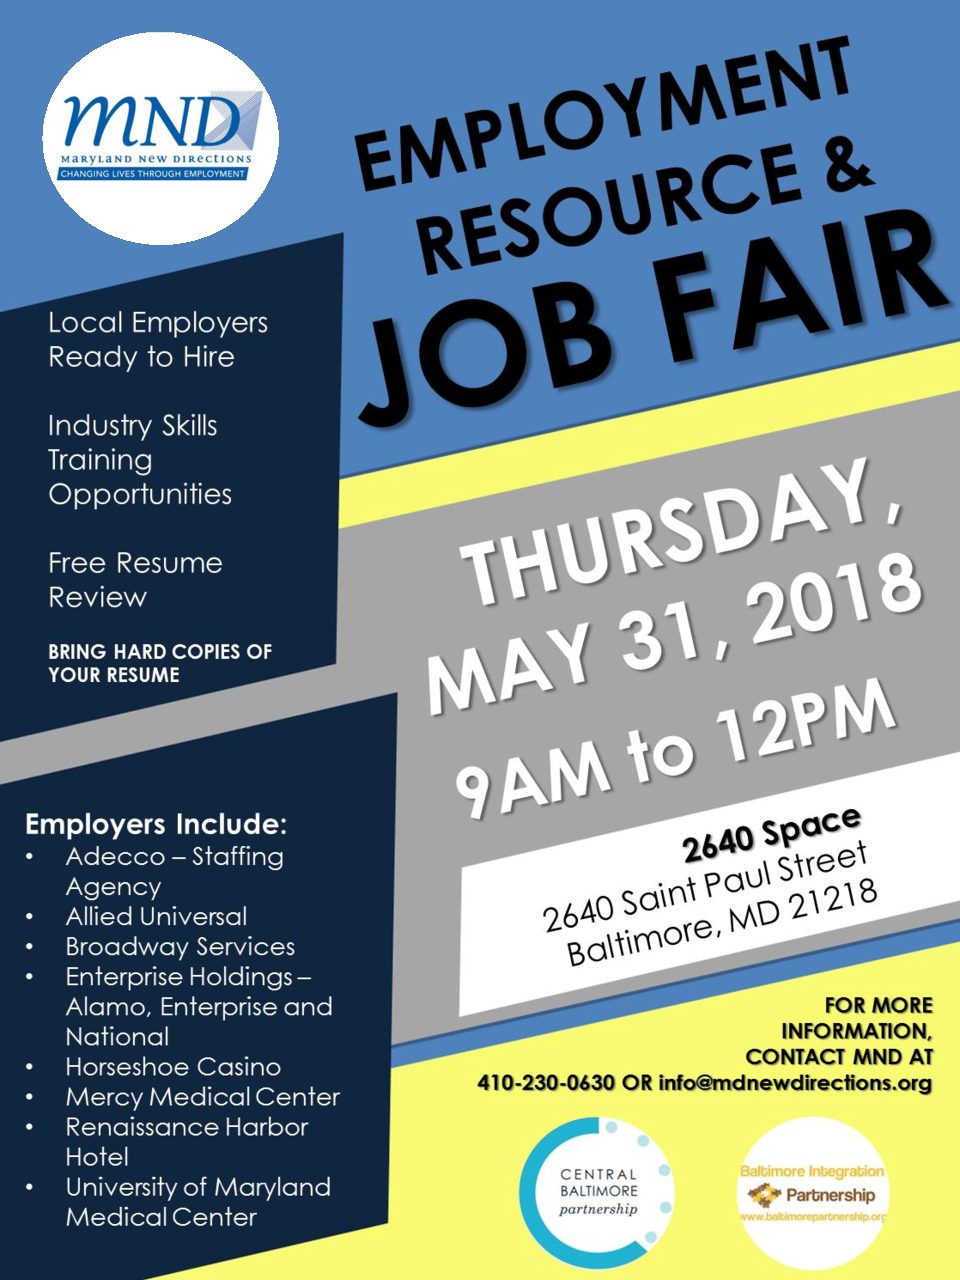 Employment Resource & Job Fair - Maryland New Directions